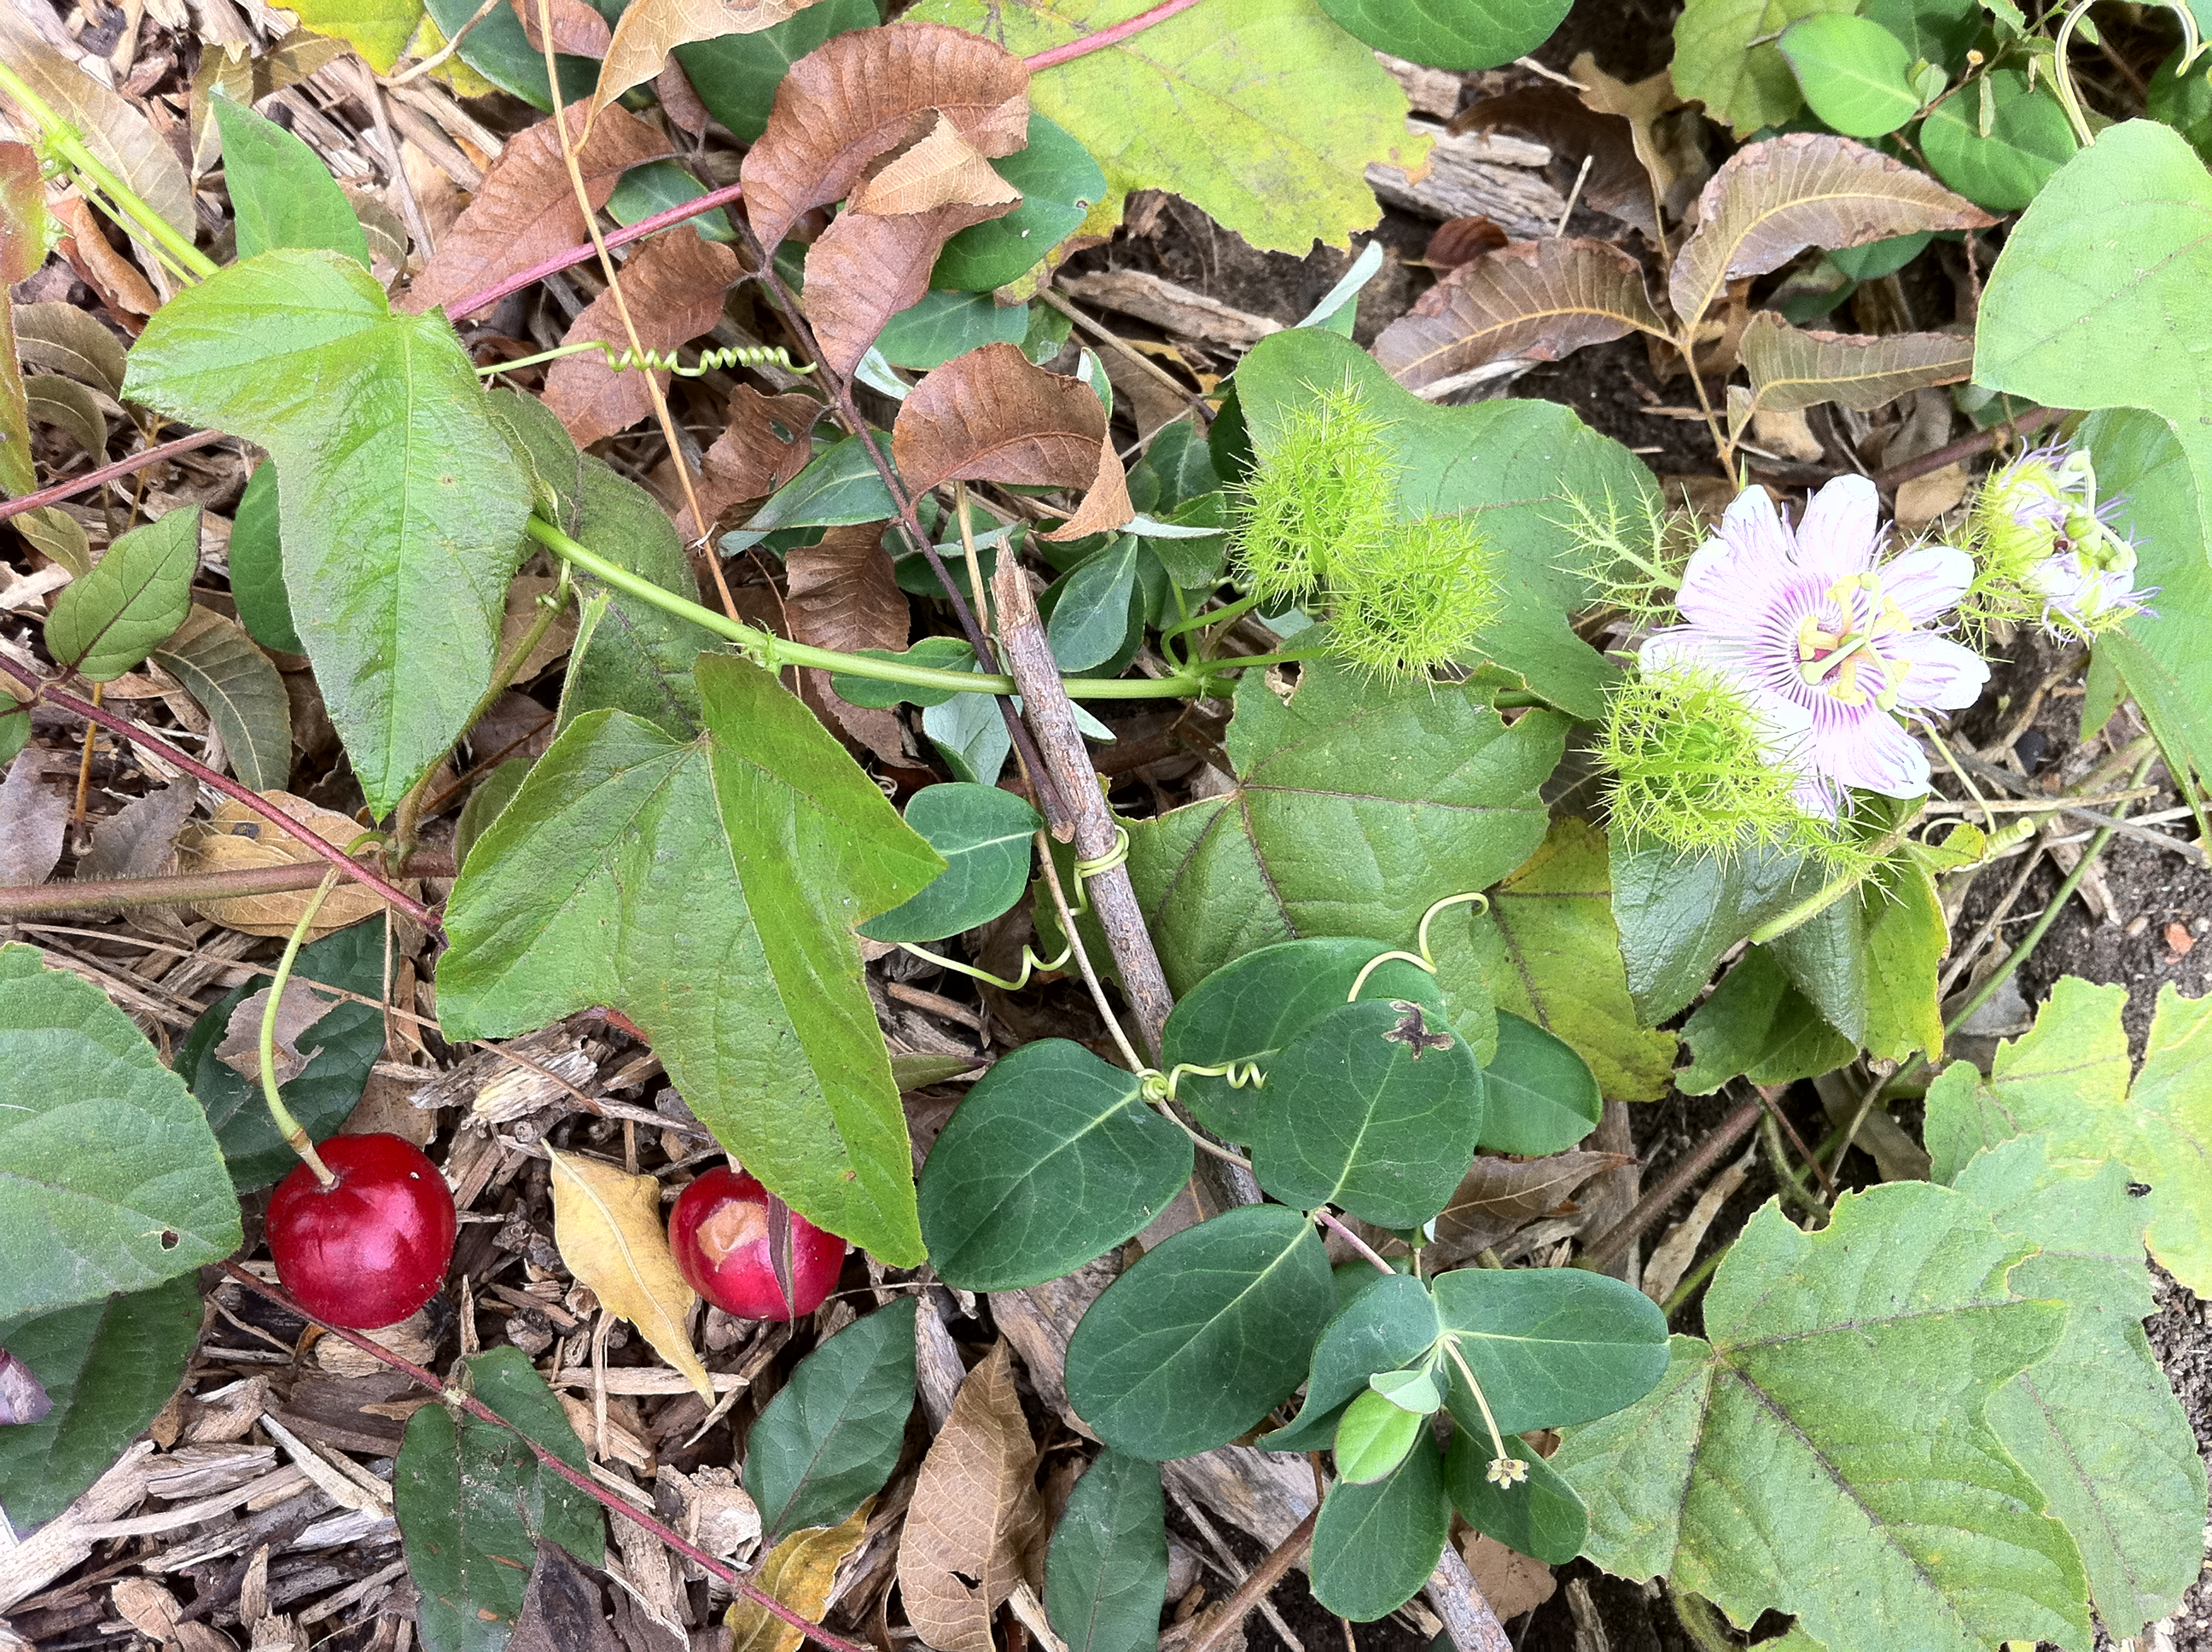 Passionflower and its fruit, the host plant to the Gulf Fritillary and Zebra Longwing, on the San Antonio Riverwalk